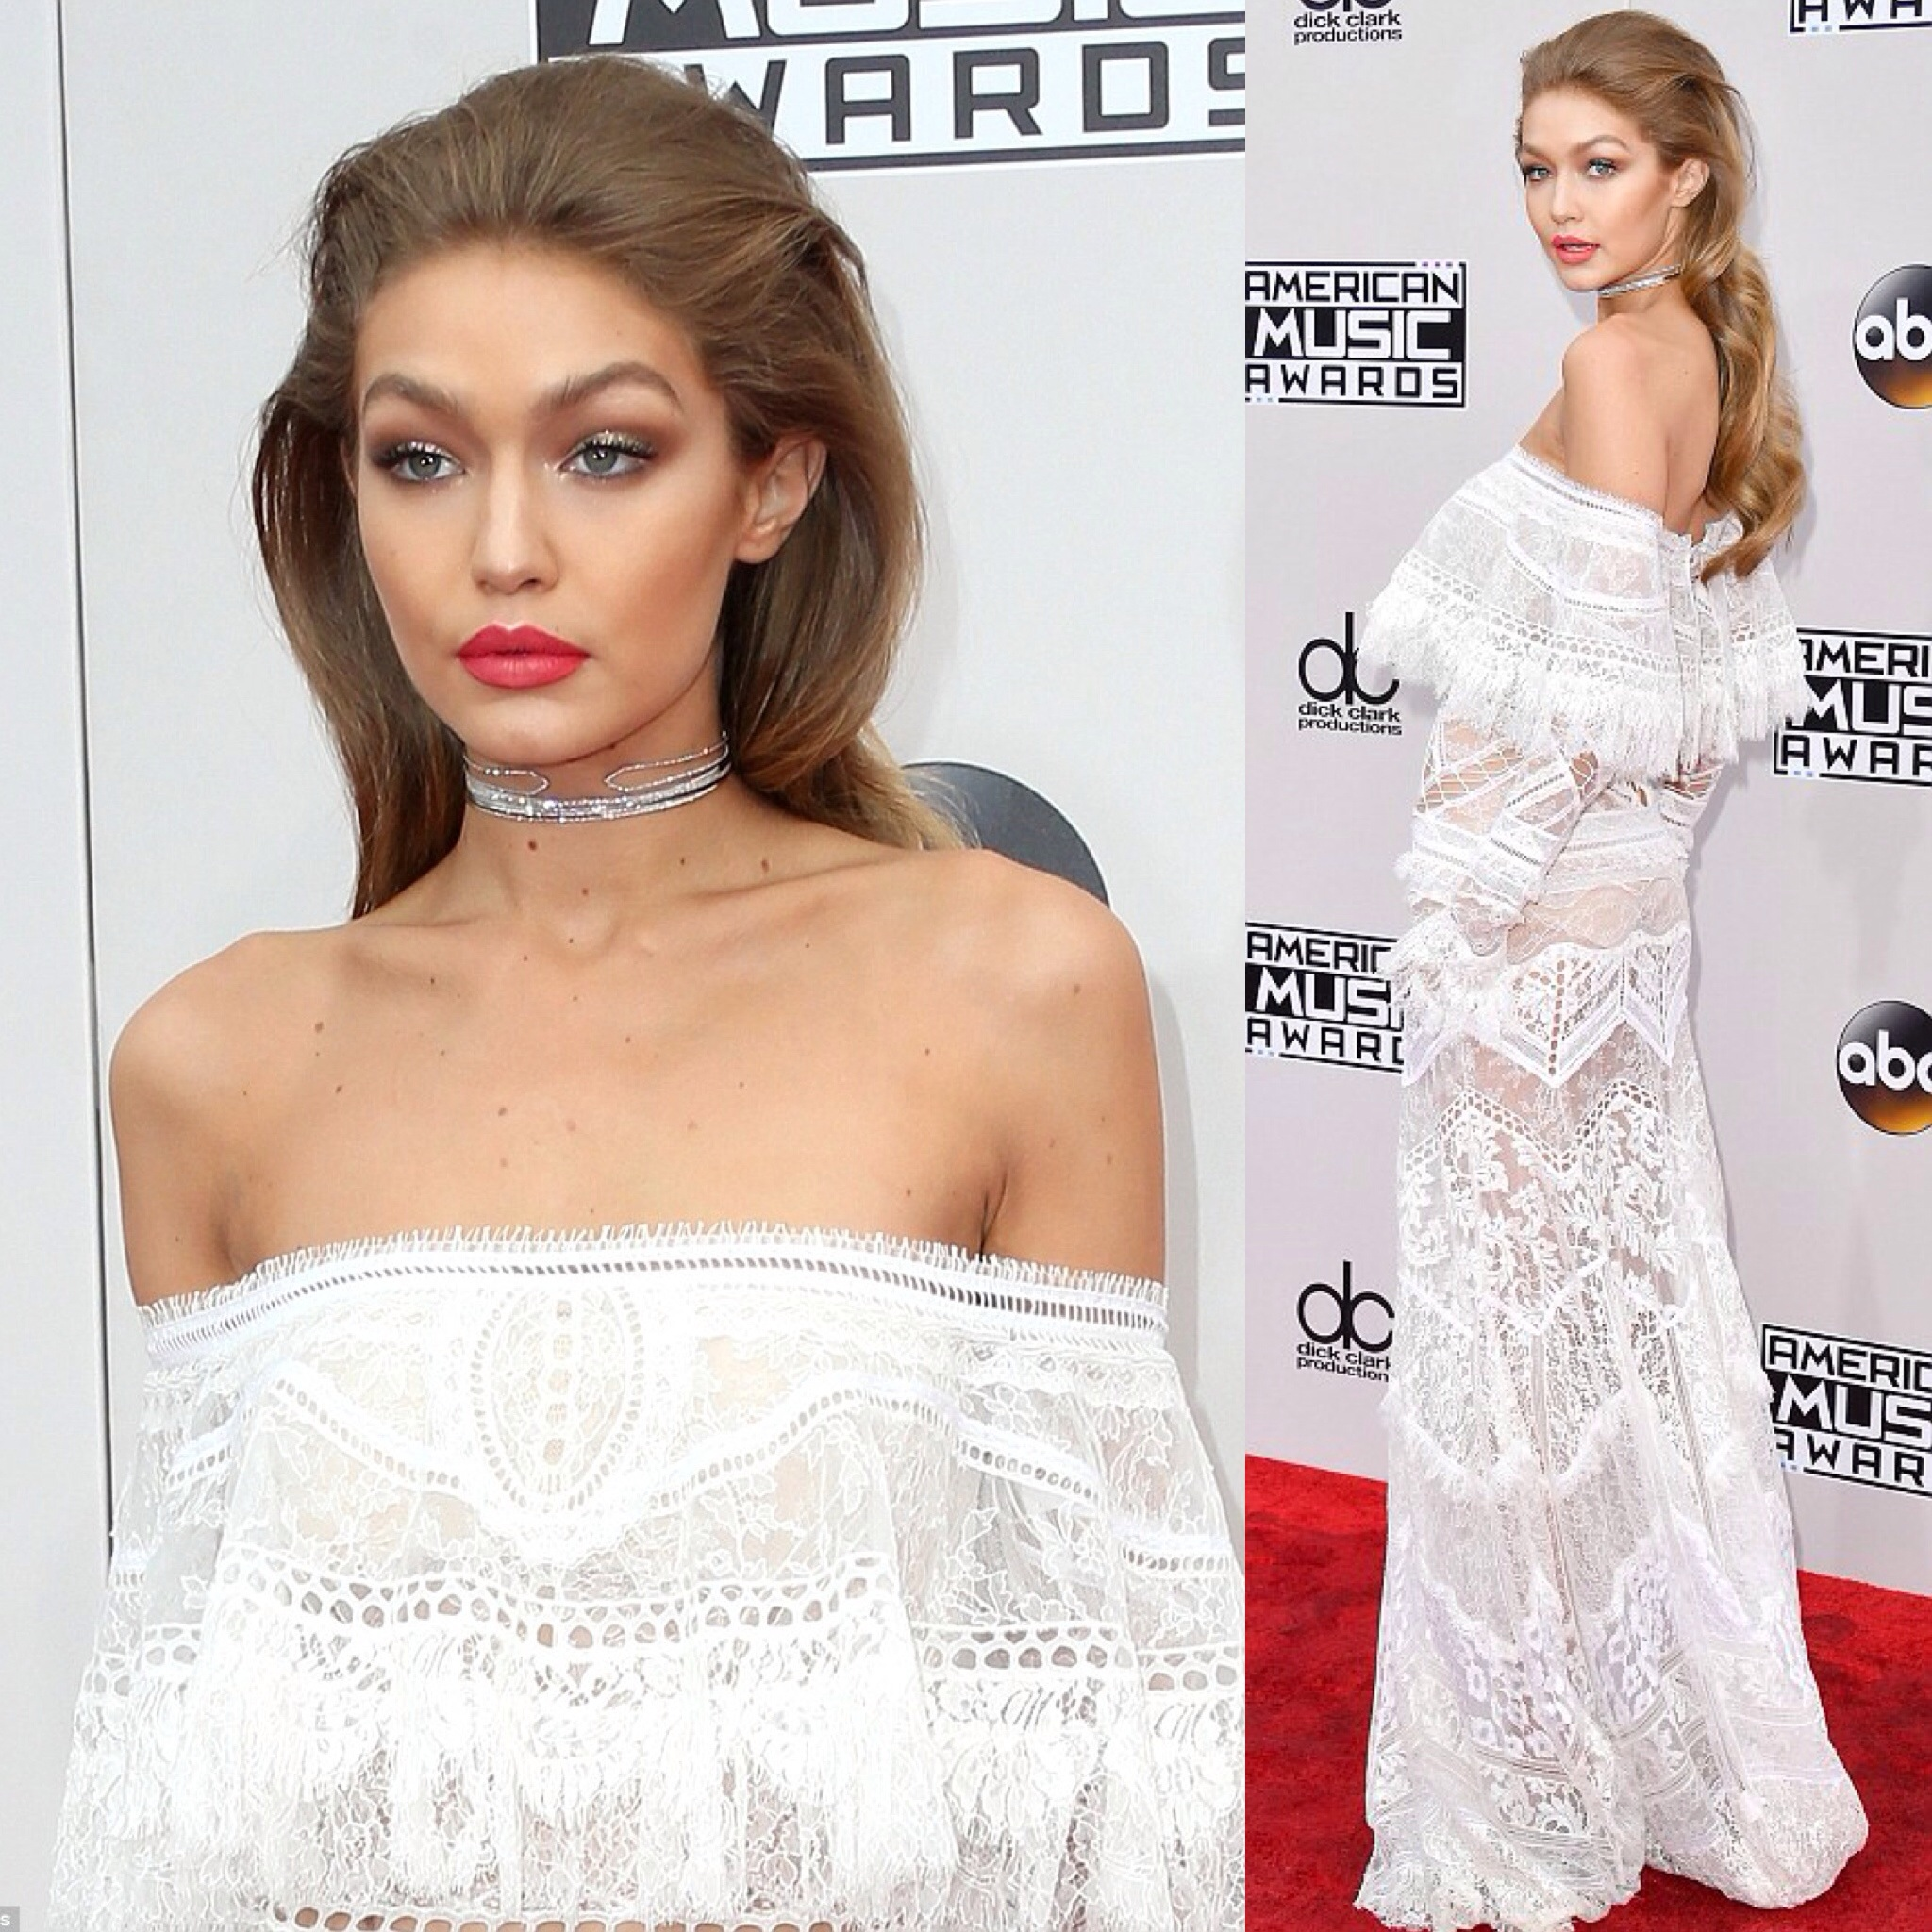 Gigi Hadid was the host if the American Music Awards 2016.